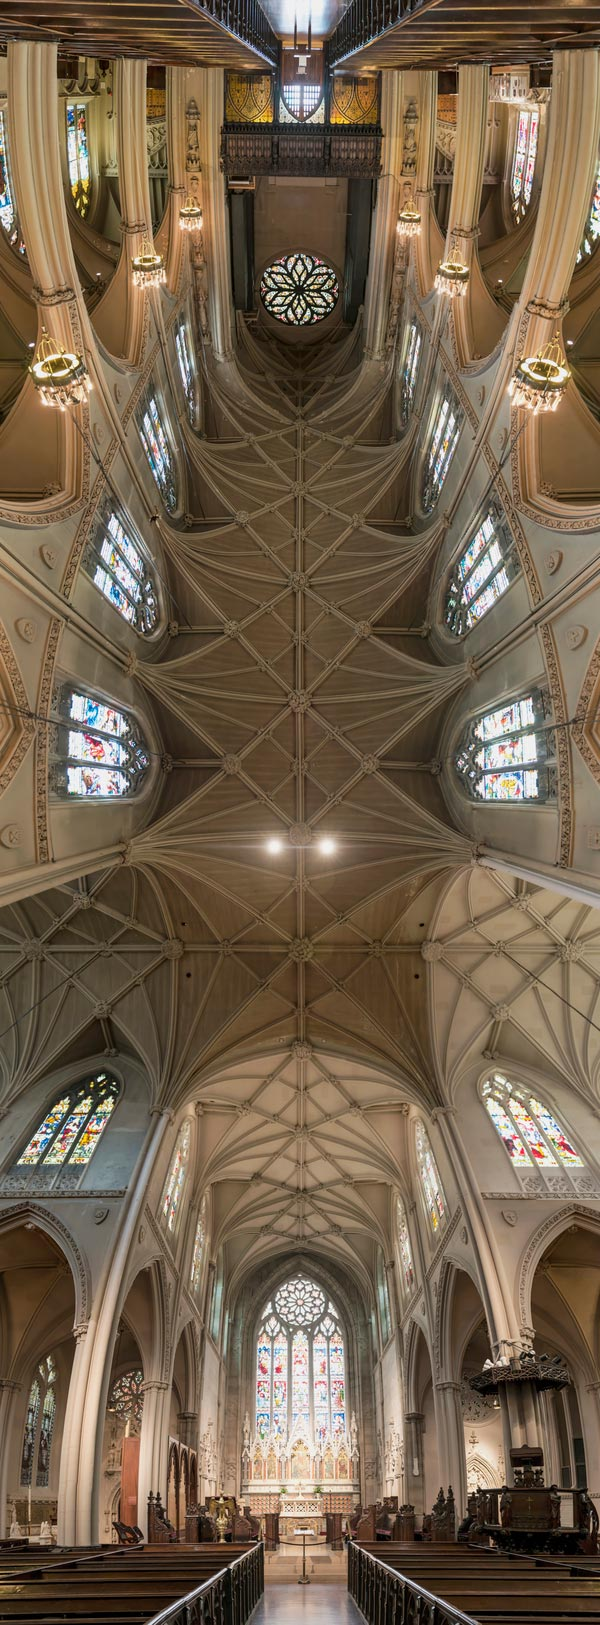 vertical panoramas of church ceilings 2 Amazing Vertical Panoramas of Church Ceilings